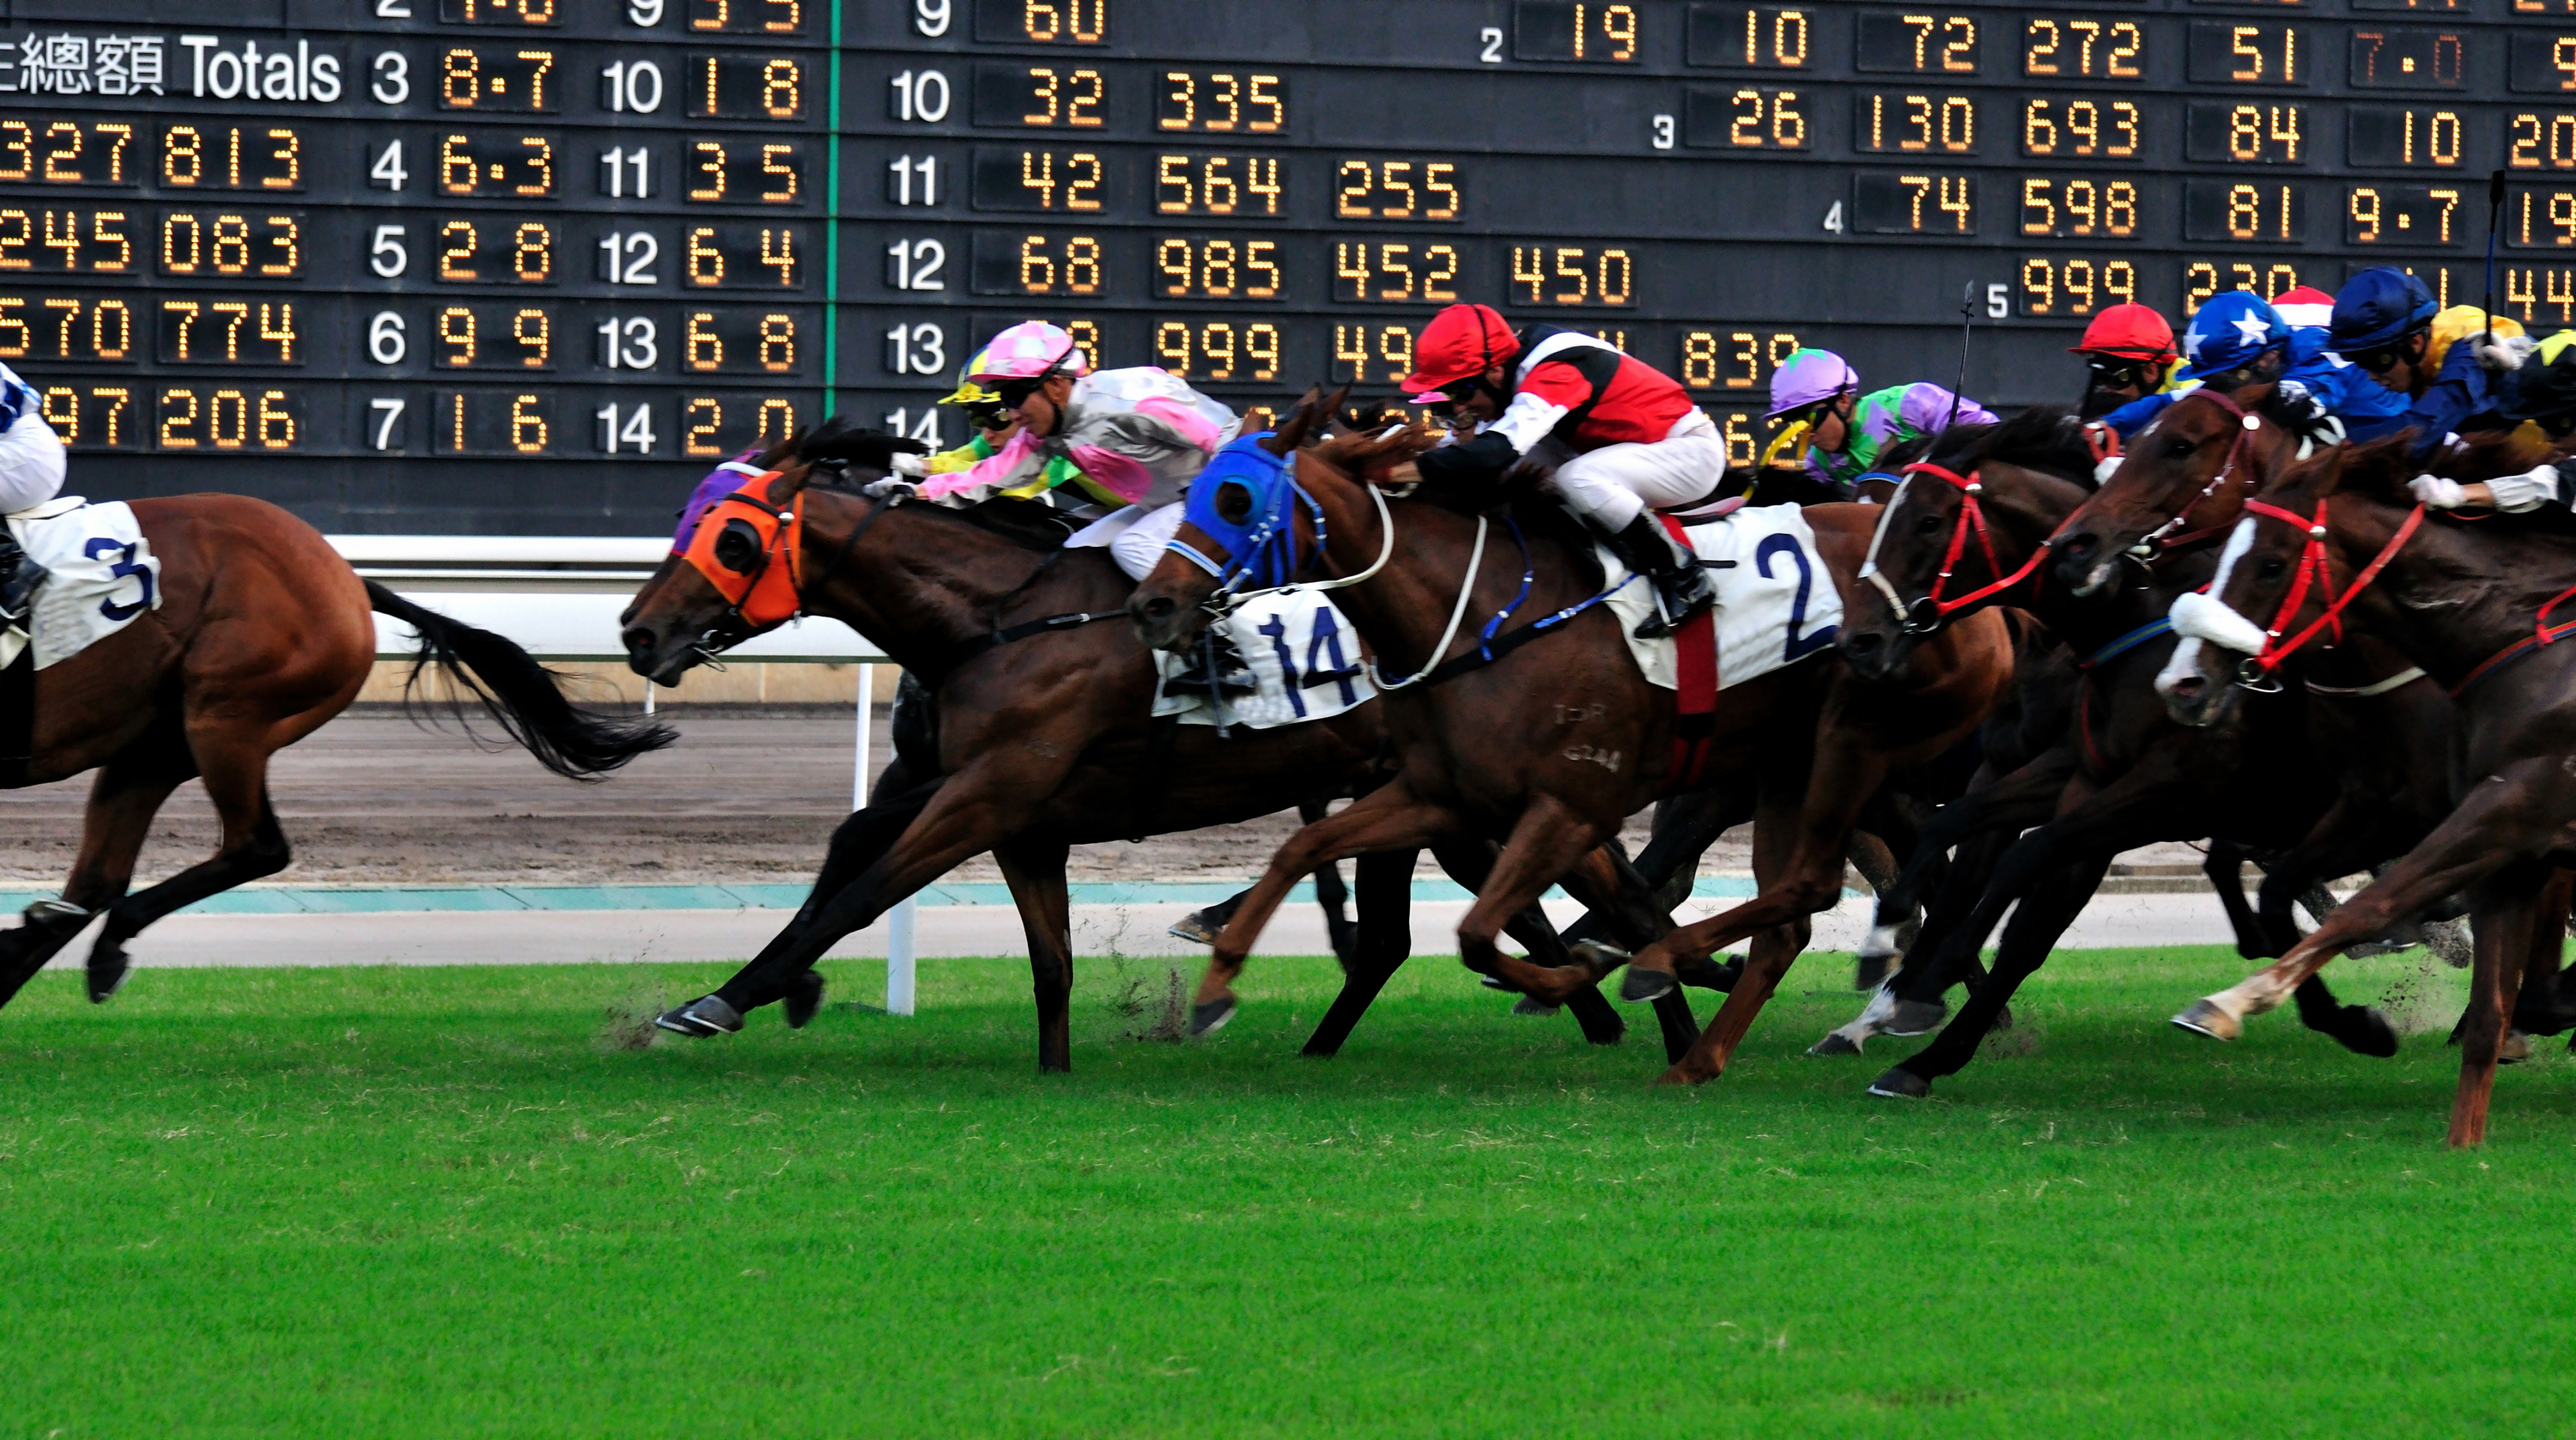 Hong Kong International Races, horse racing